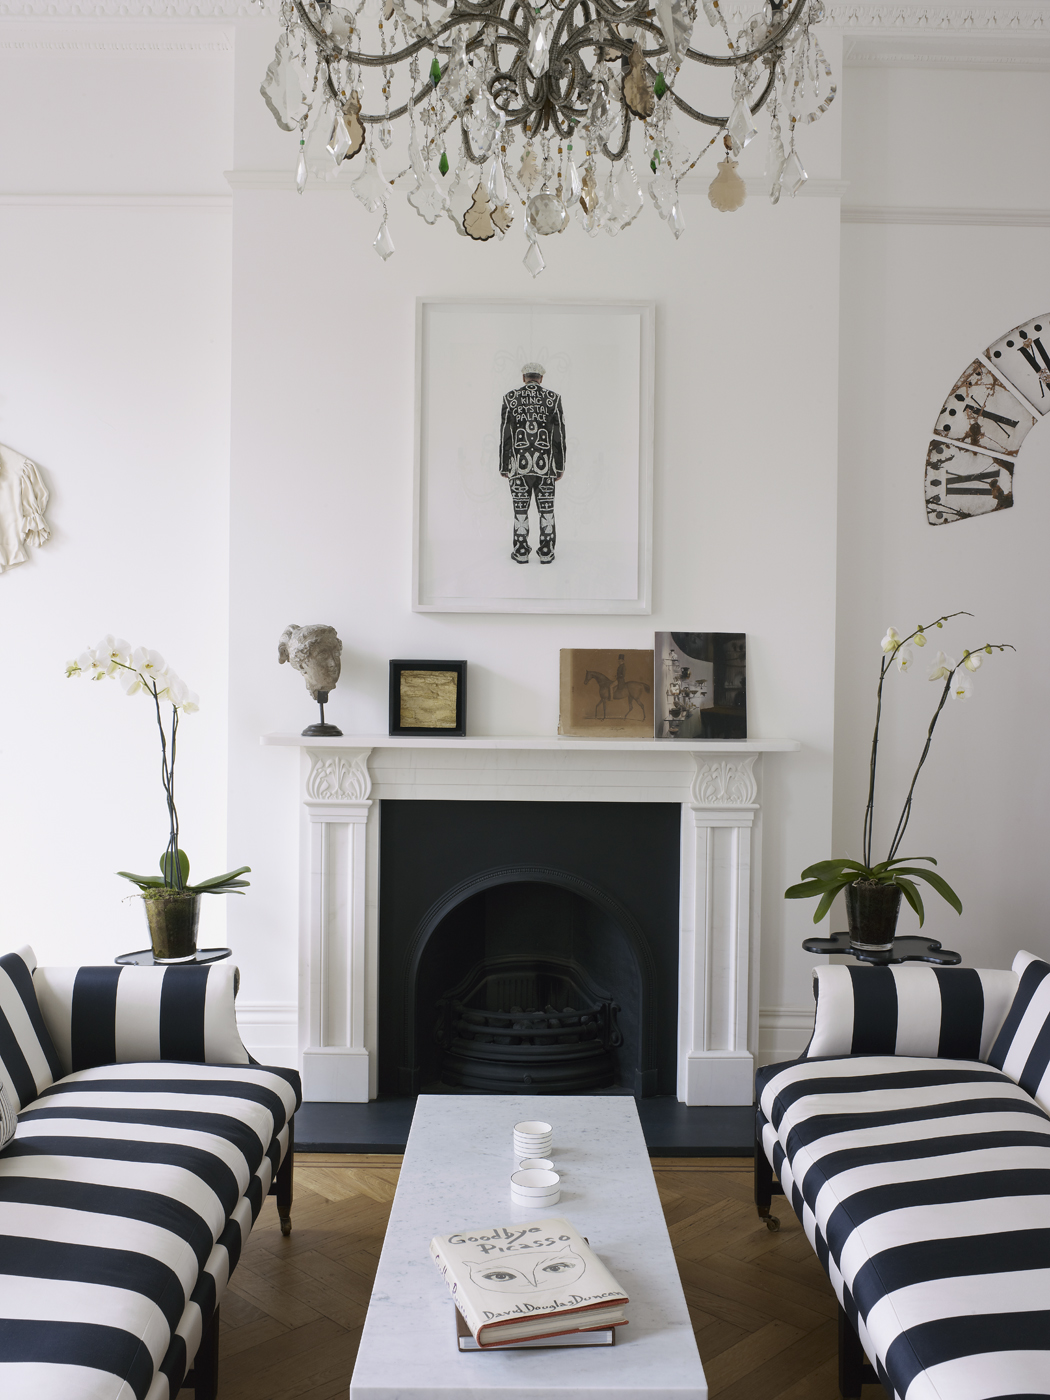 Harriet Anstruther, A bright and modern 1840s London town house- HOME TOURS on flodeau.com 12